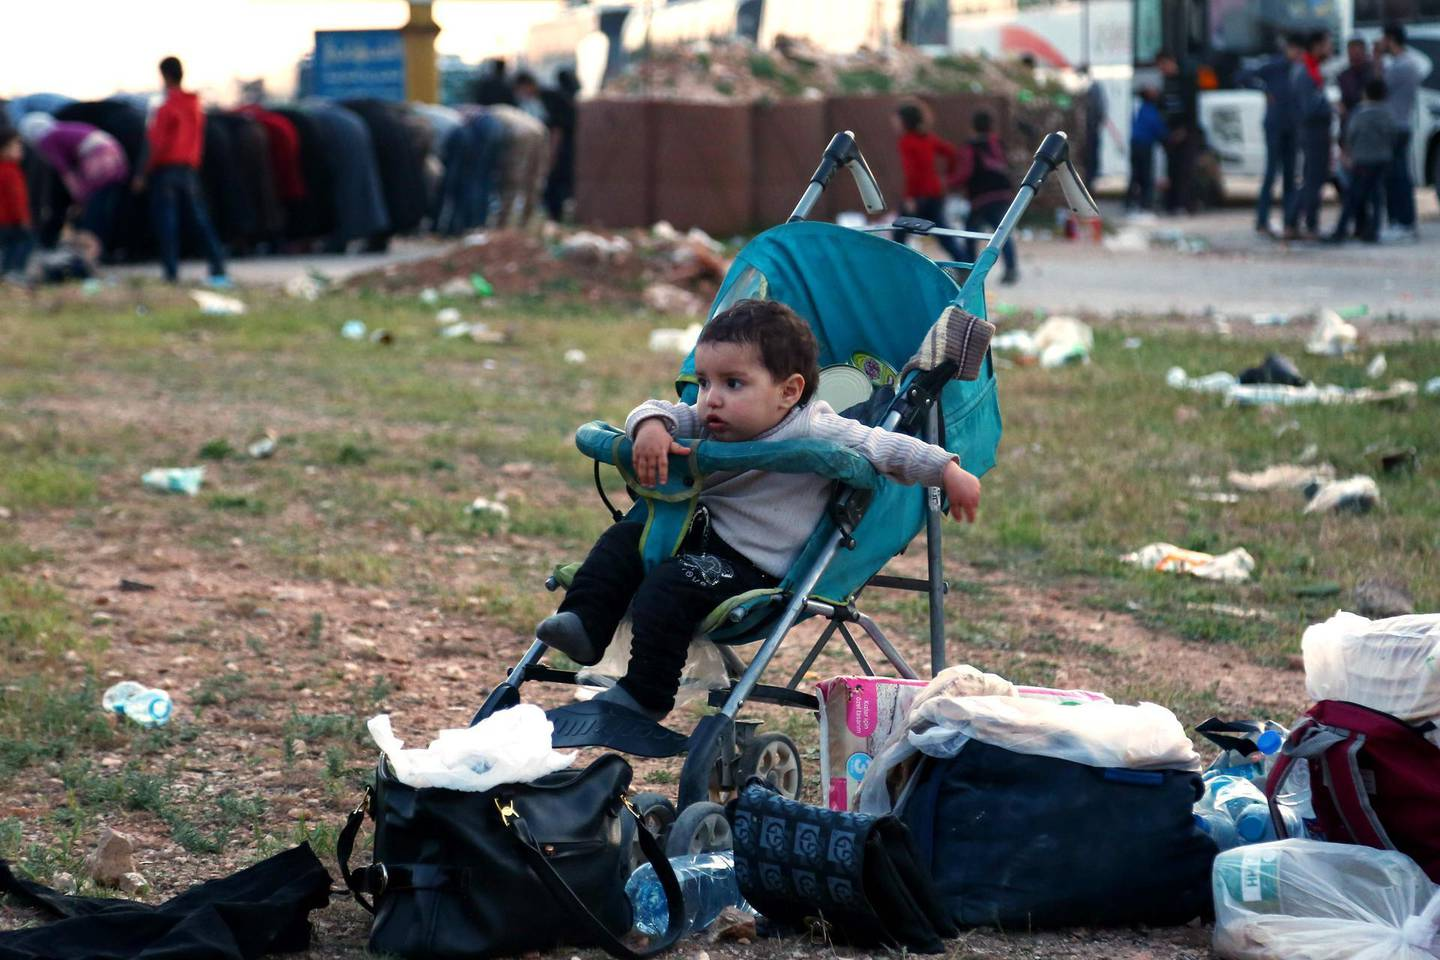 A Syrian child waits in a stroller as buses with Jaish al-Islam fighters and their families on board arrive from their former rebel bastion of Douma in Eastern Ghouta at the Abu al-Zindeen checkpoint controlled by Turkish-backed rebel fighters near the Syrian town of al-Bab in the northern Aleppo province, on April 14, 2018. The Syrian army on April 14 declared that all anti-regime forces had left Eastern Ghouta, nearly two months into a blistering offensive on the rebel enclave. / AFP PHOTO / Nazeer al-Khatib